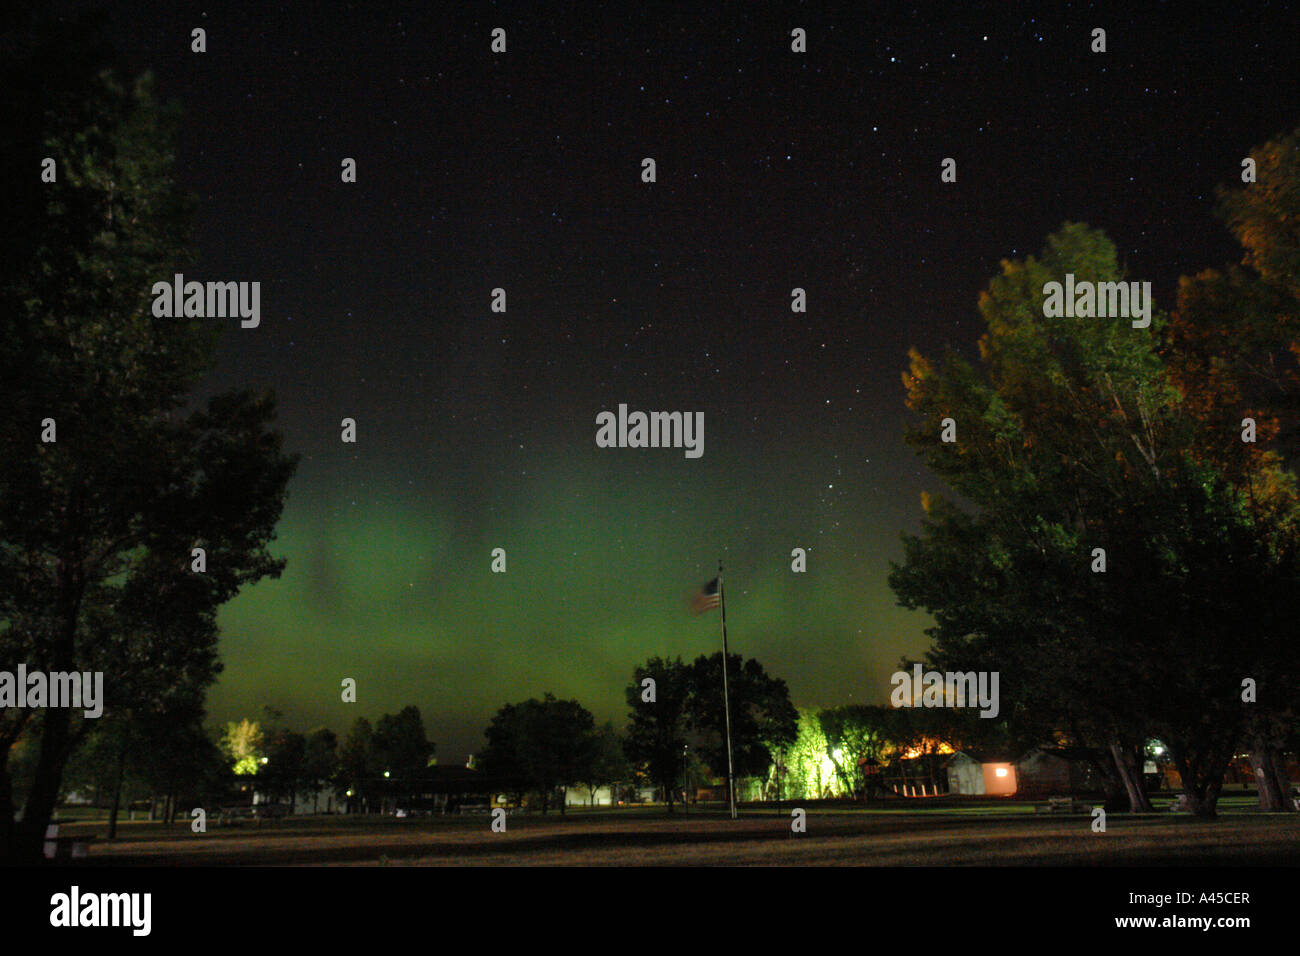 AJD57372, Medina, ND, North Dakota, Northern Lights, Aurora Borealis - Stock Image